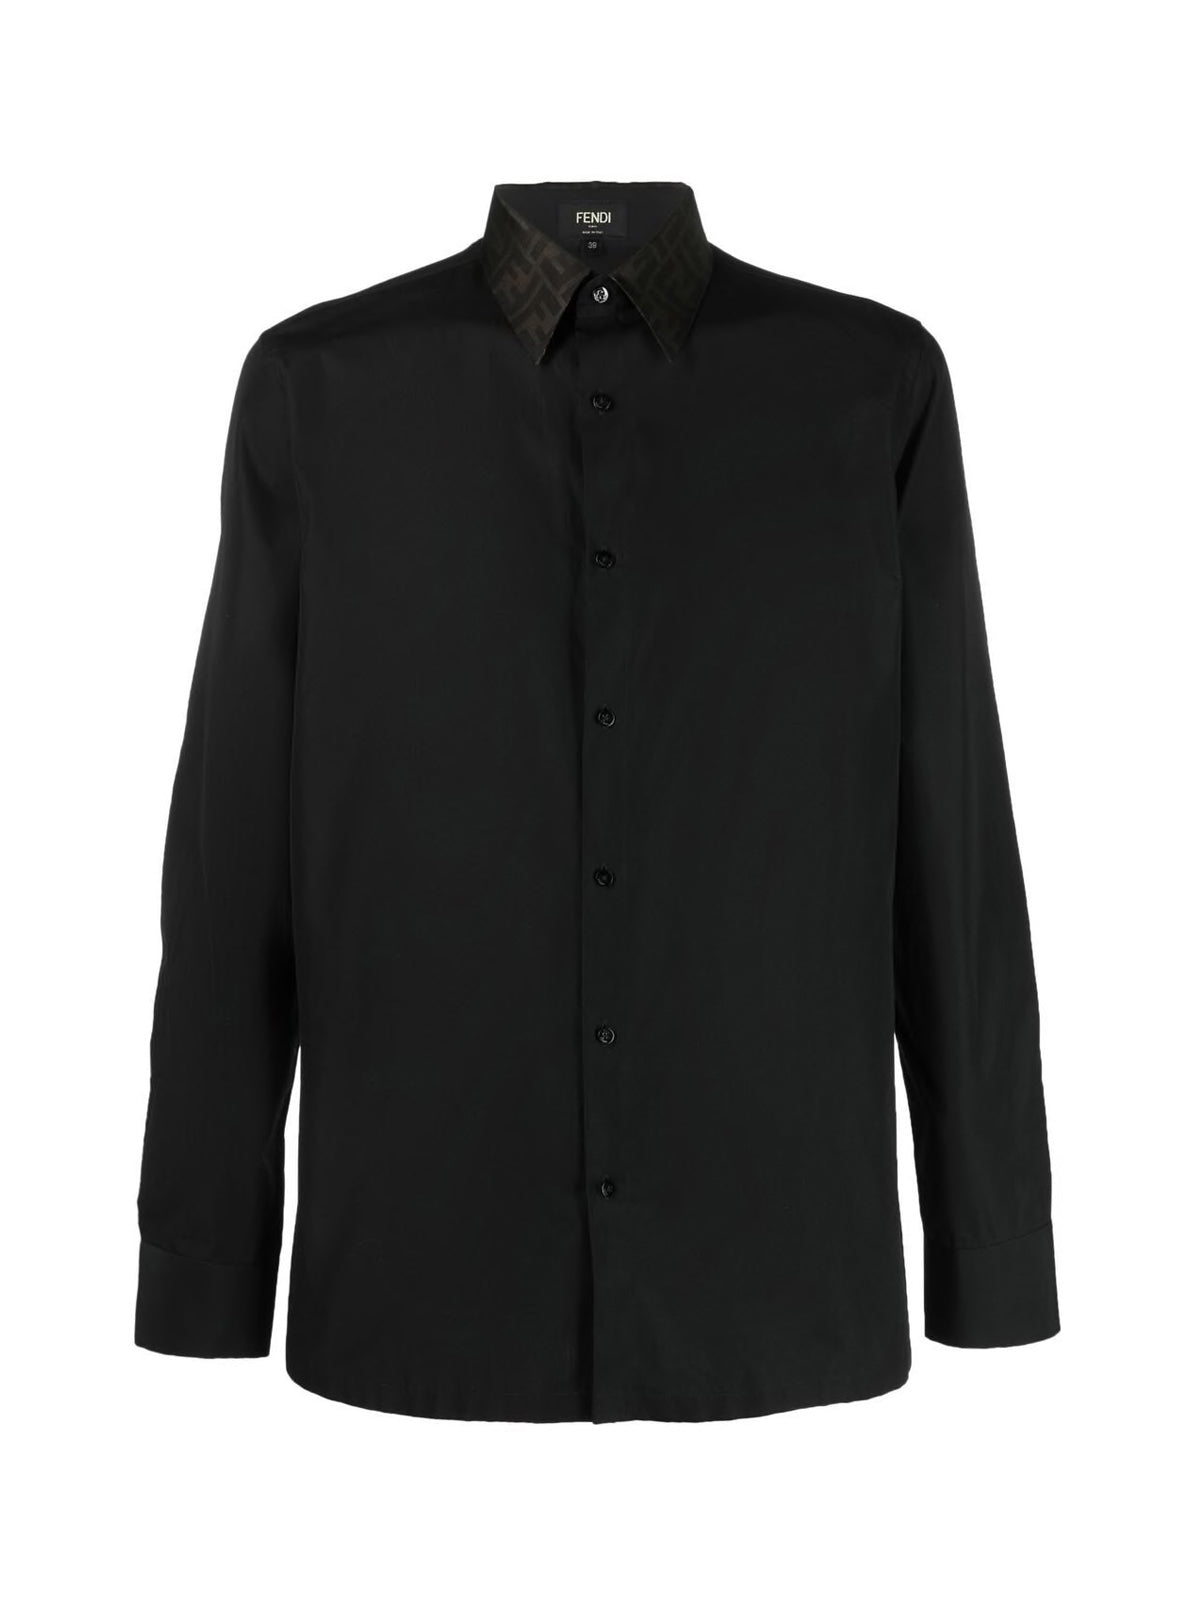 Shirt with contrast collar